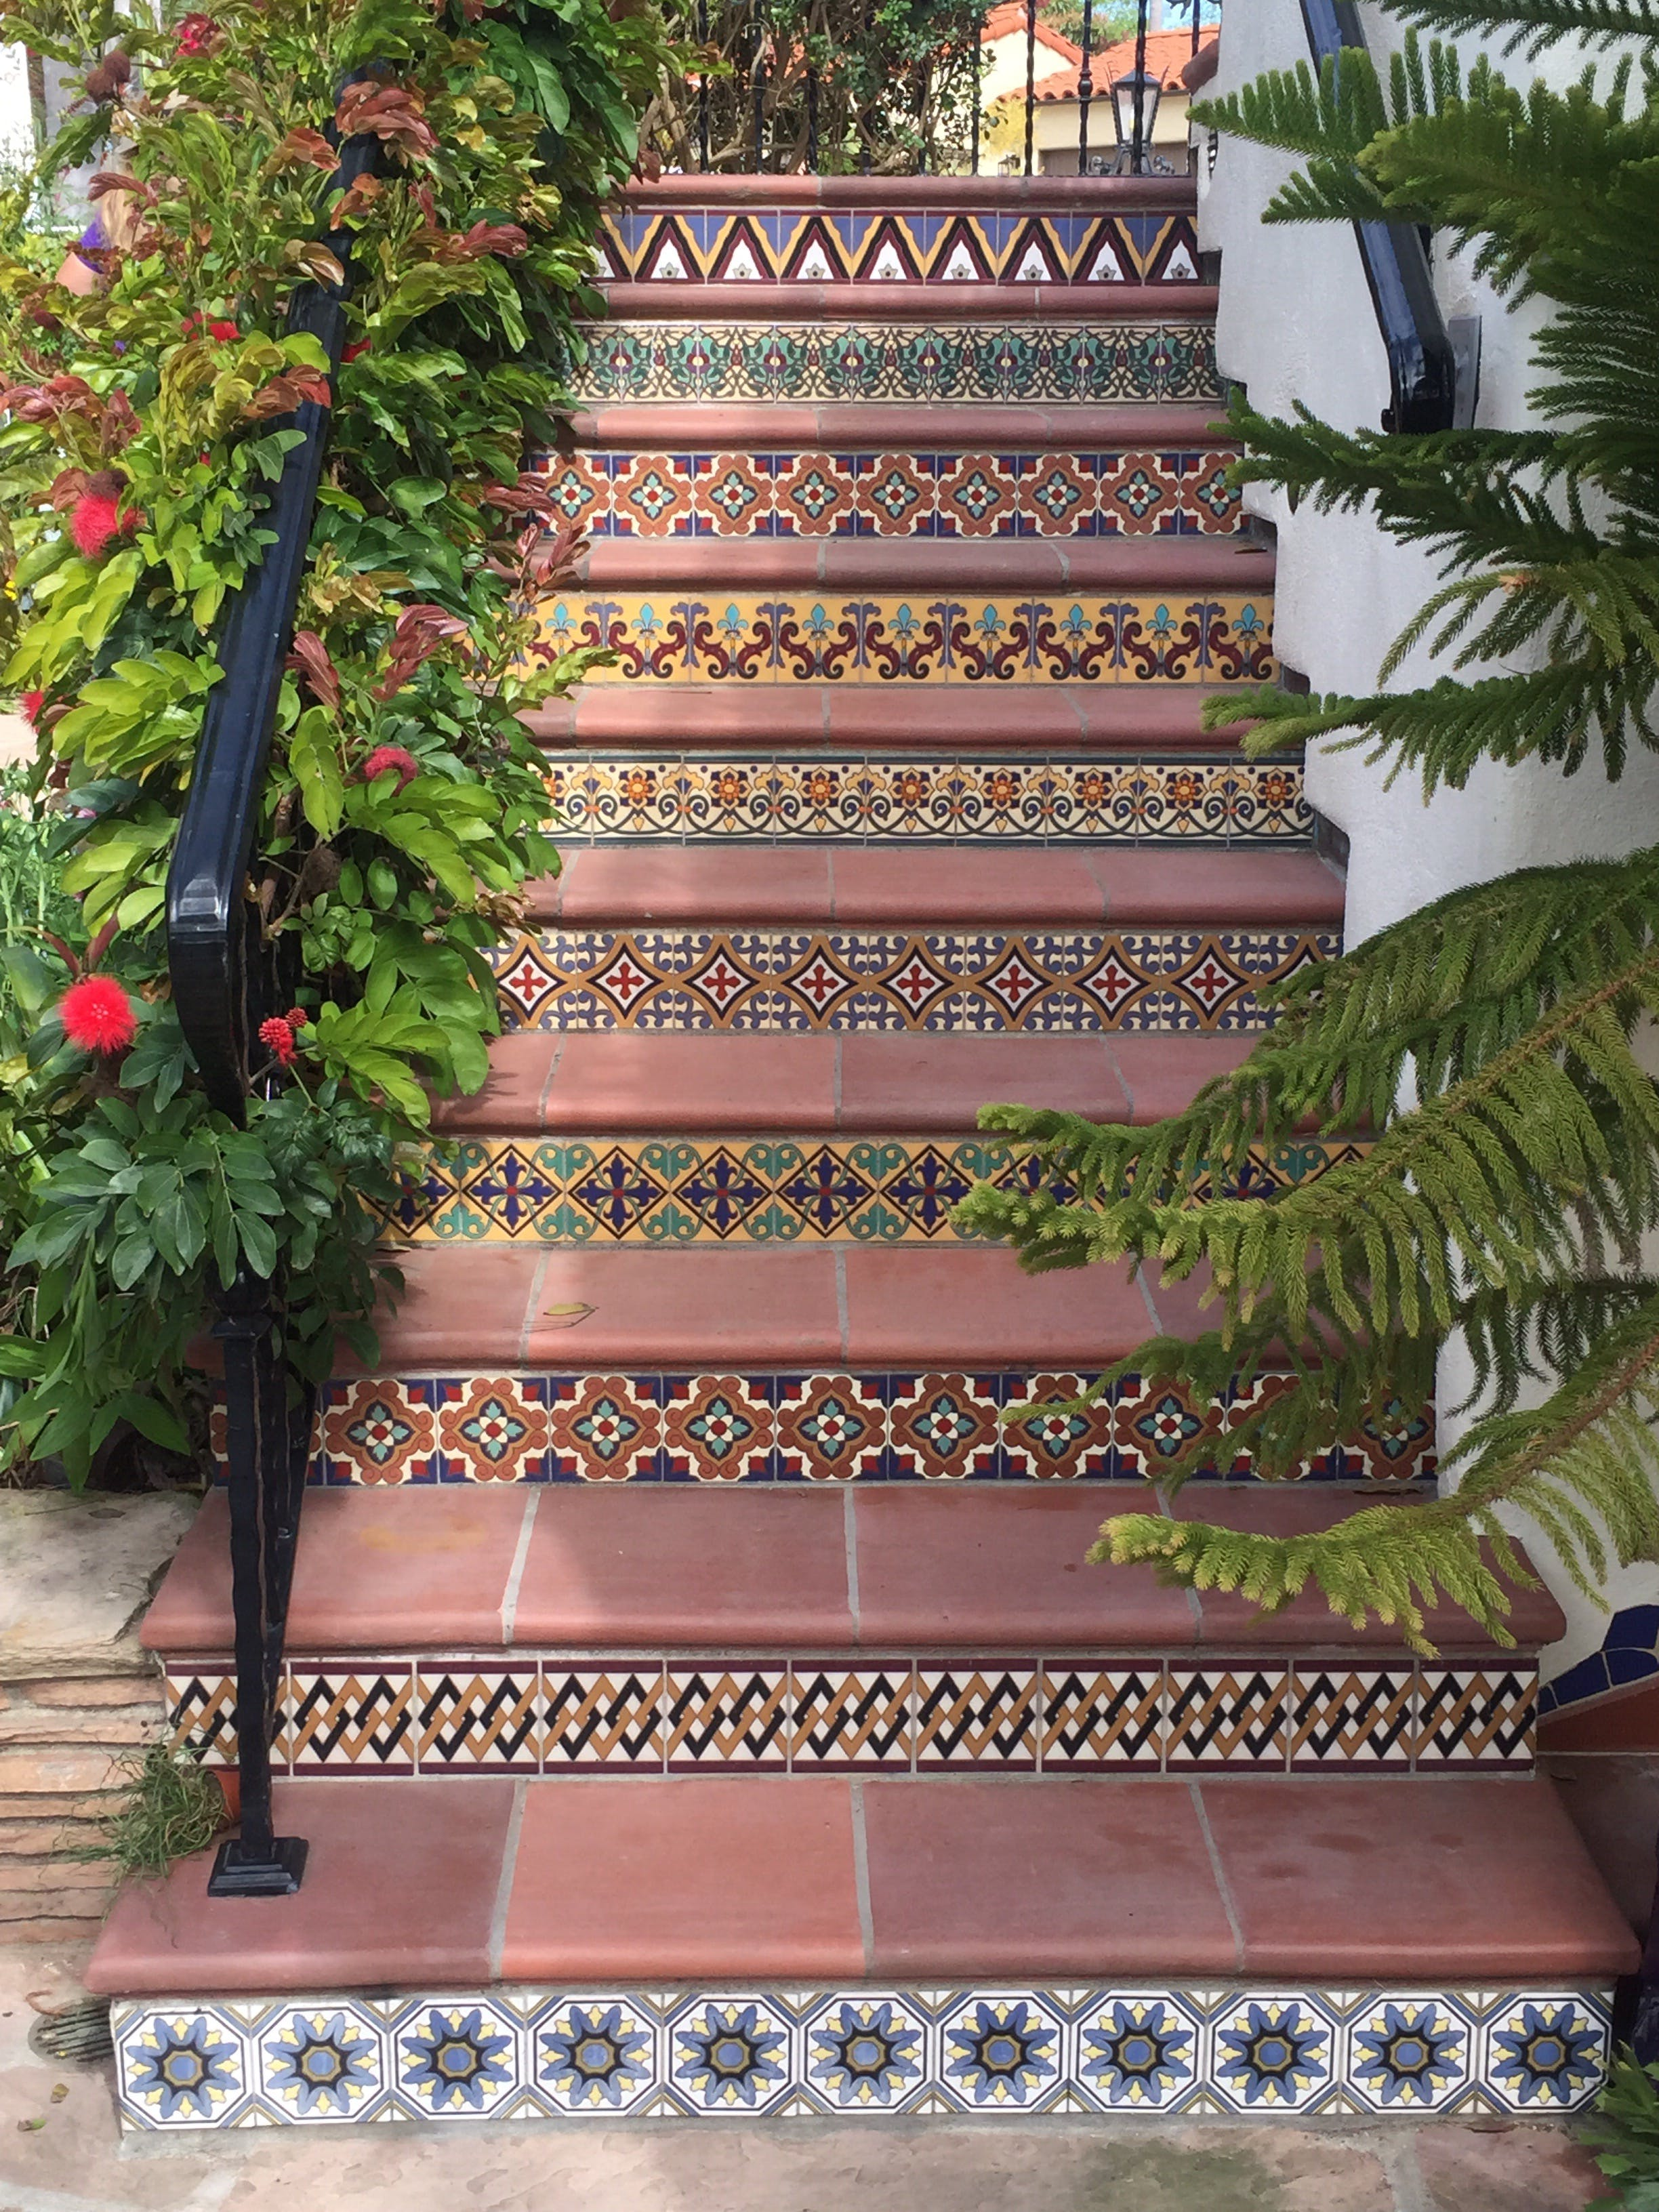 Portuguese Tiles Are Totally the New Subway Tiles